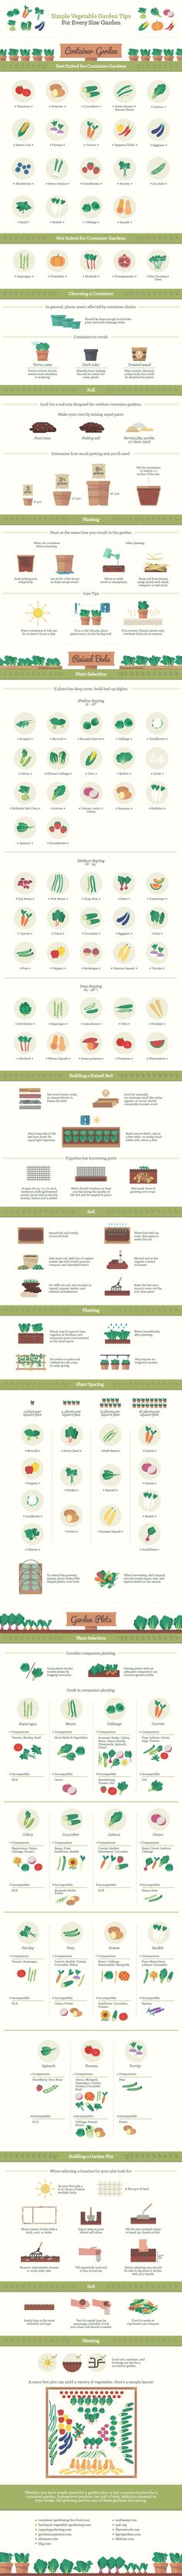 simple vegetable garden tips (for every size garden)